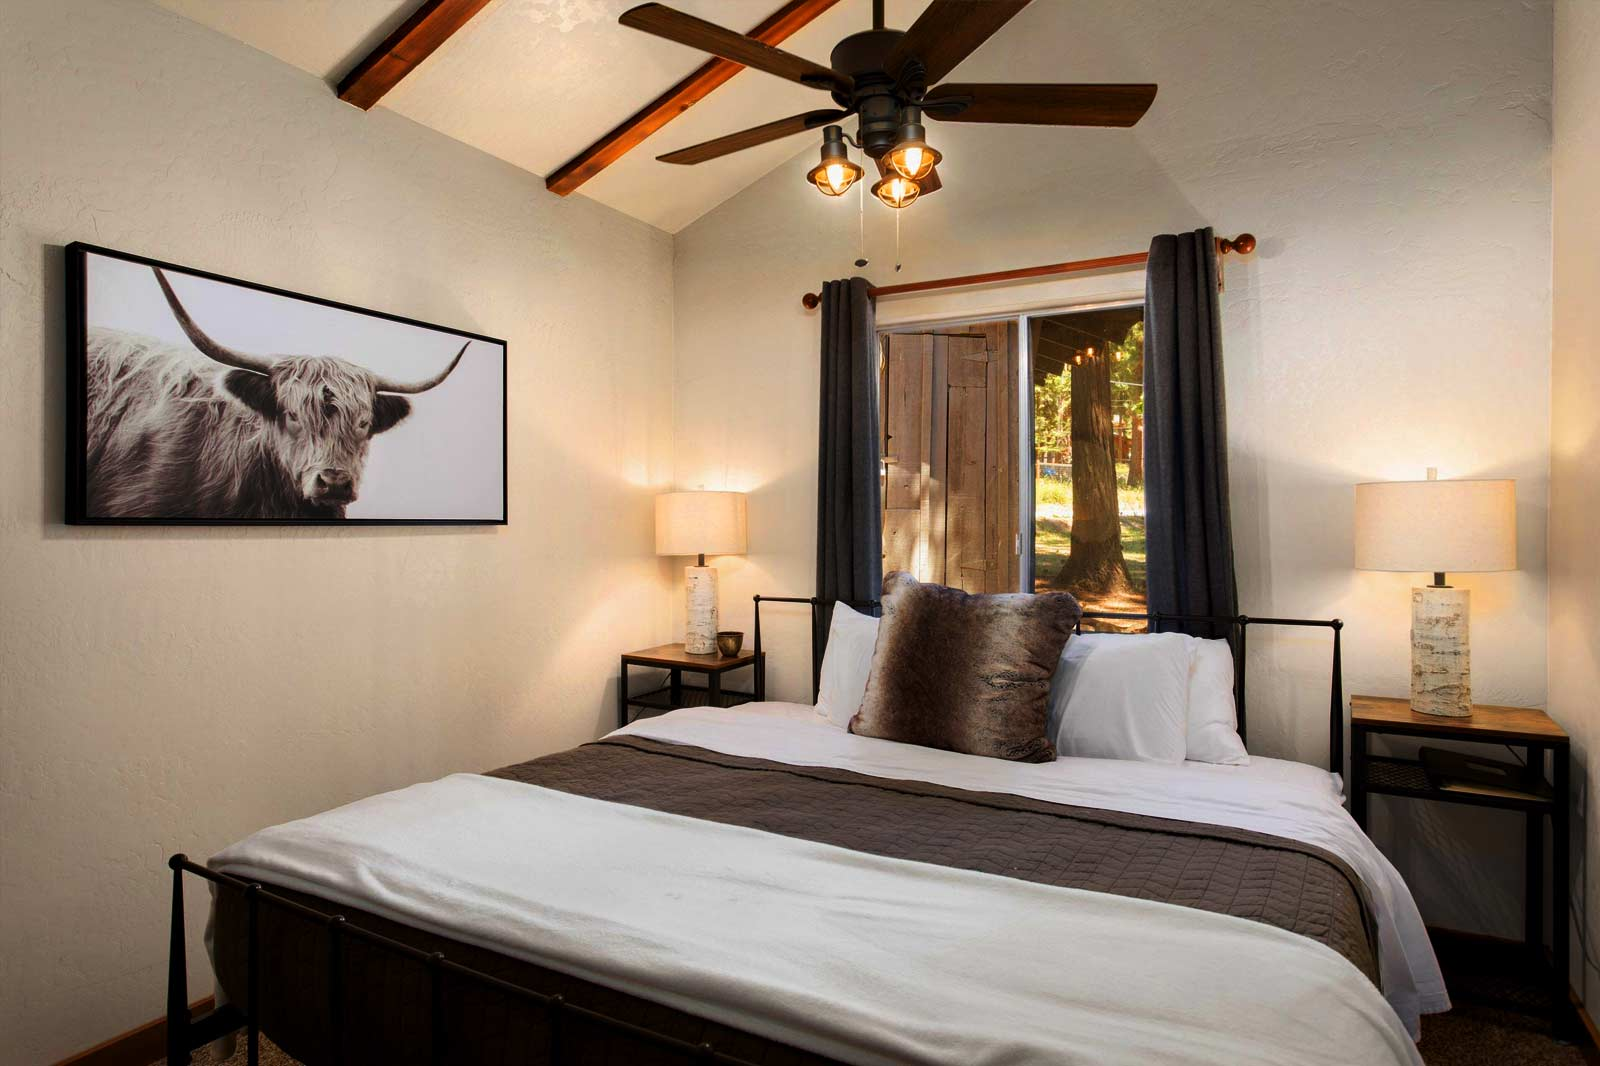 Bedroom with Queen bed and longhorn photograph on wall hanging from the Pines Cabin at Greenhorn Ranch